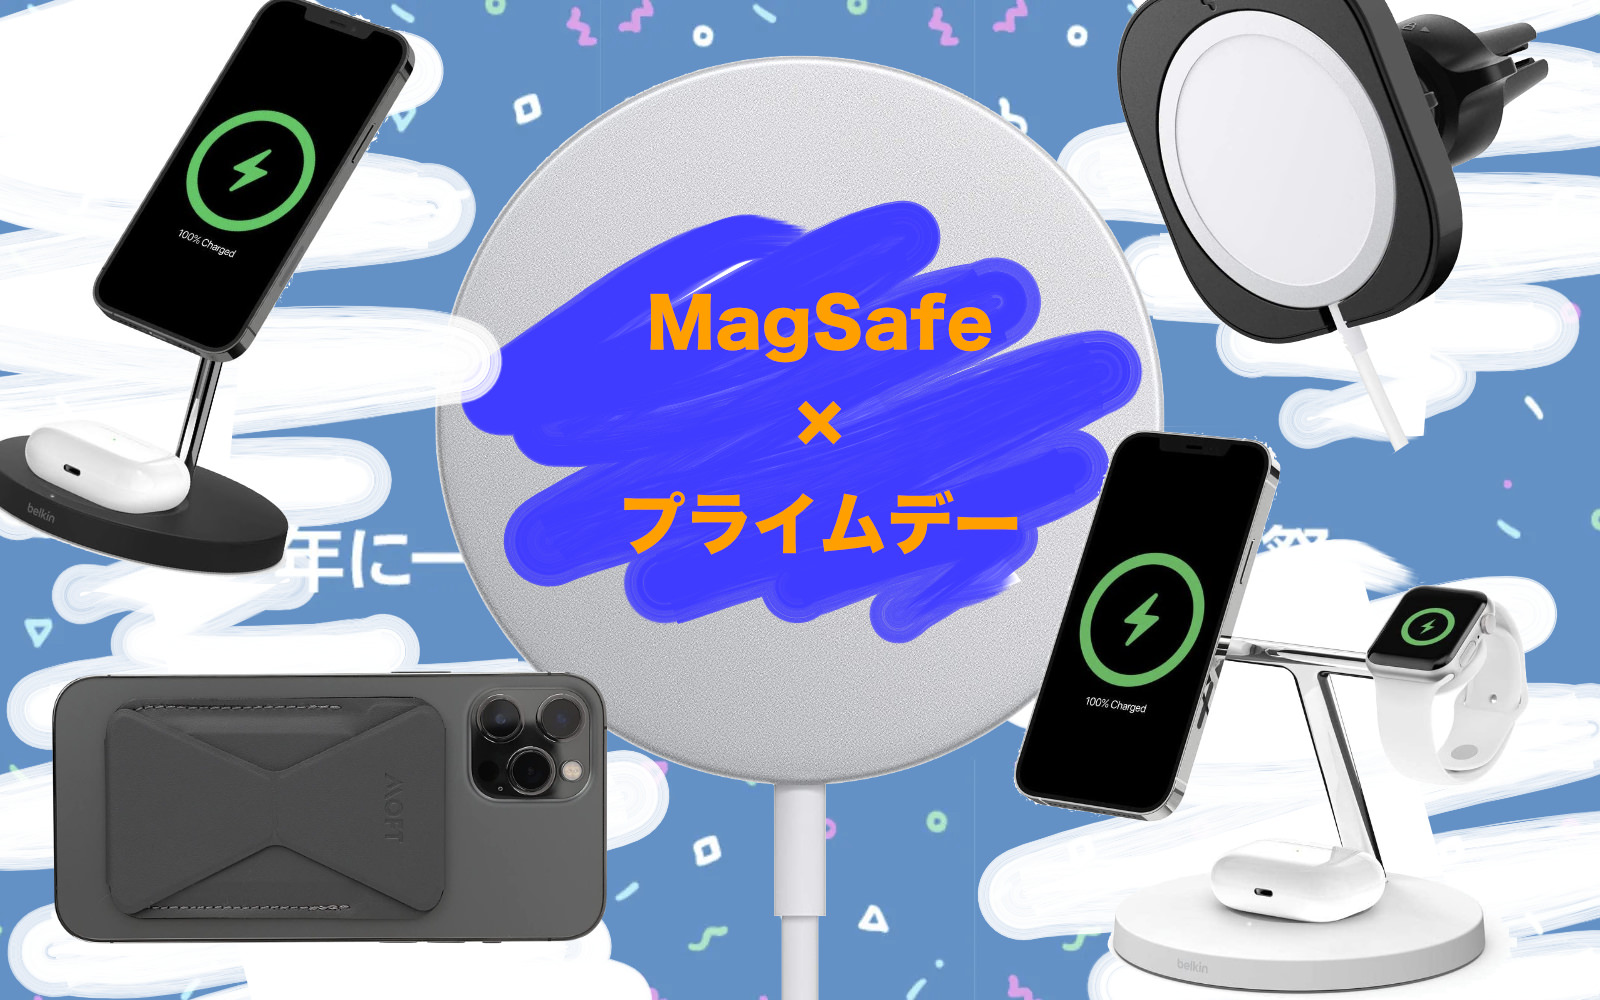 MagSafe products on sale